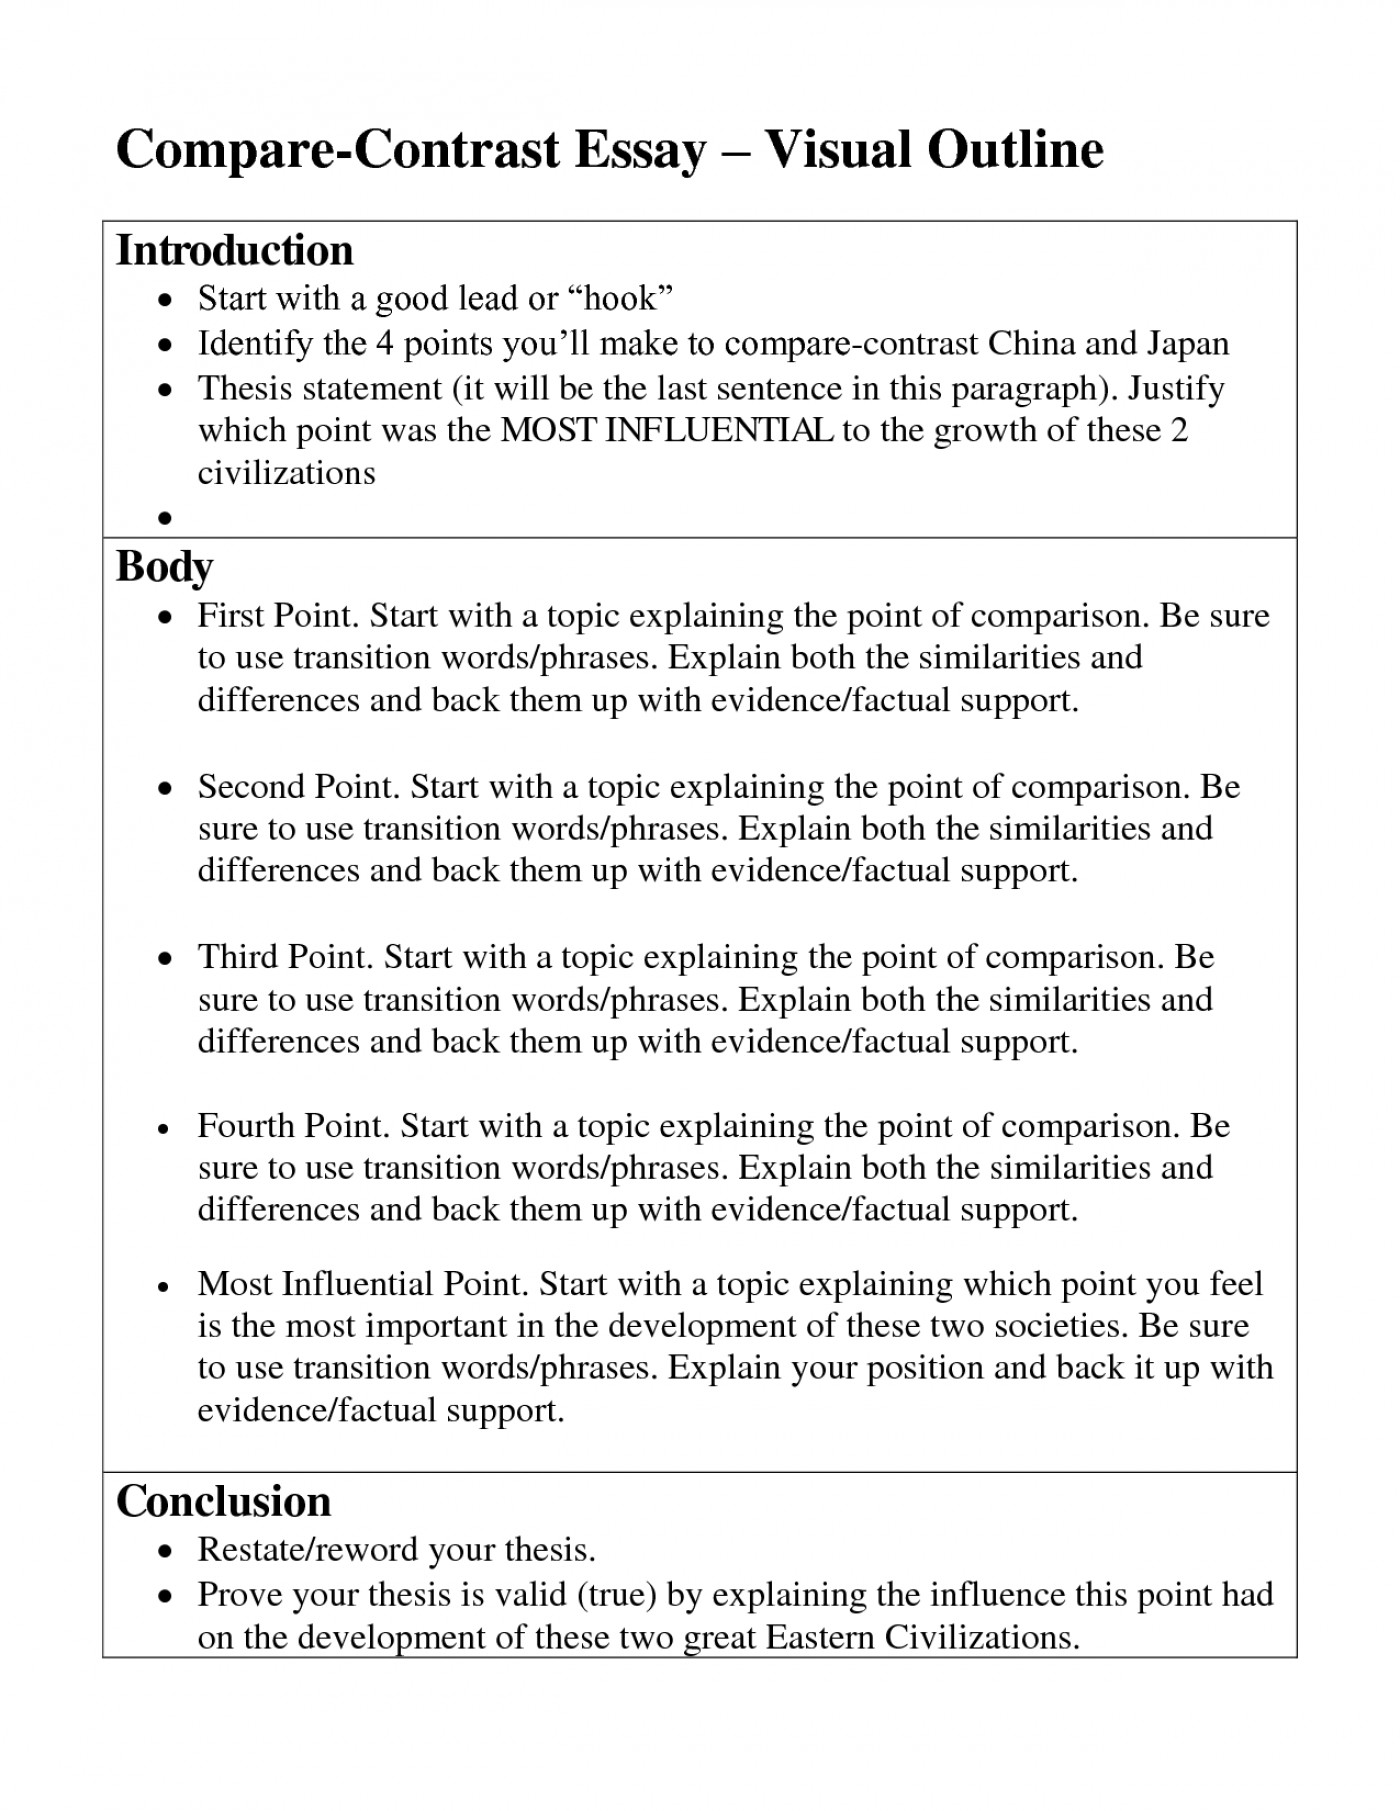 004 Comparison And Contrast Essay Outline Impressive Compare 5th Grade High School Template 1400